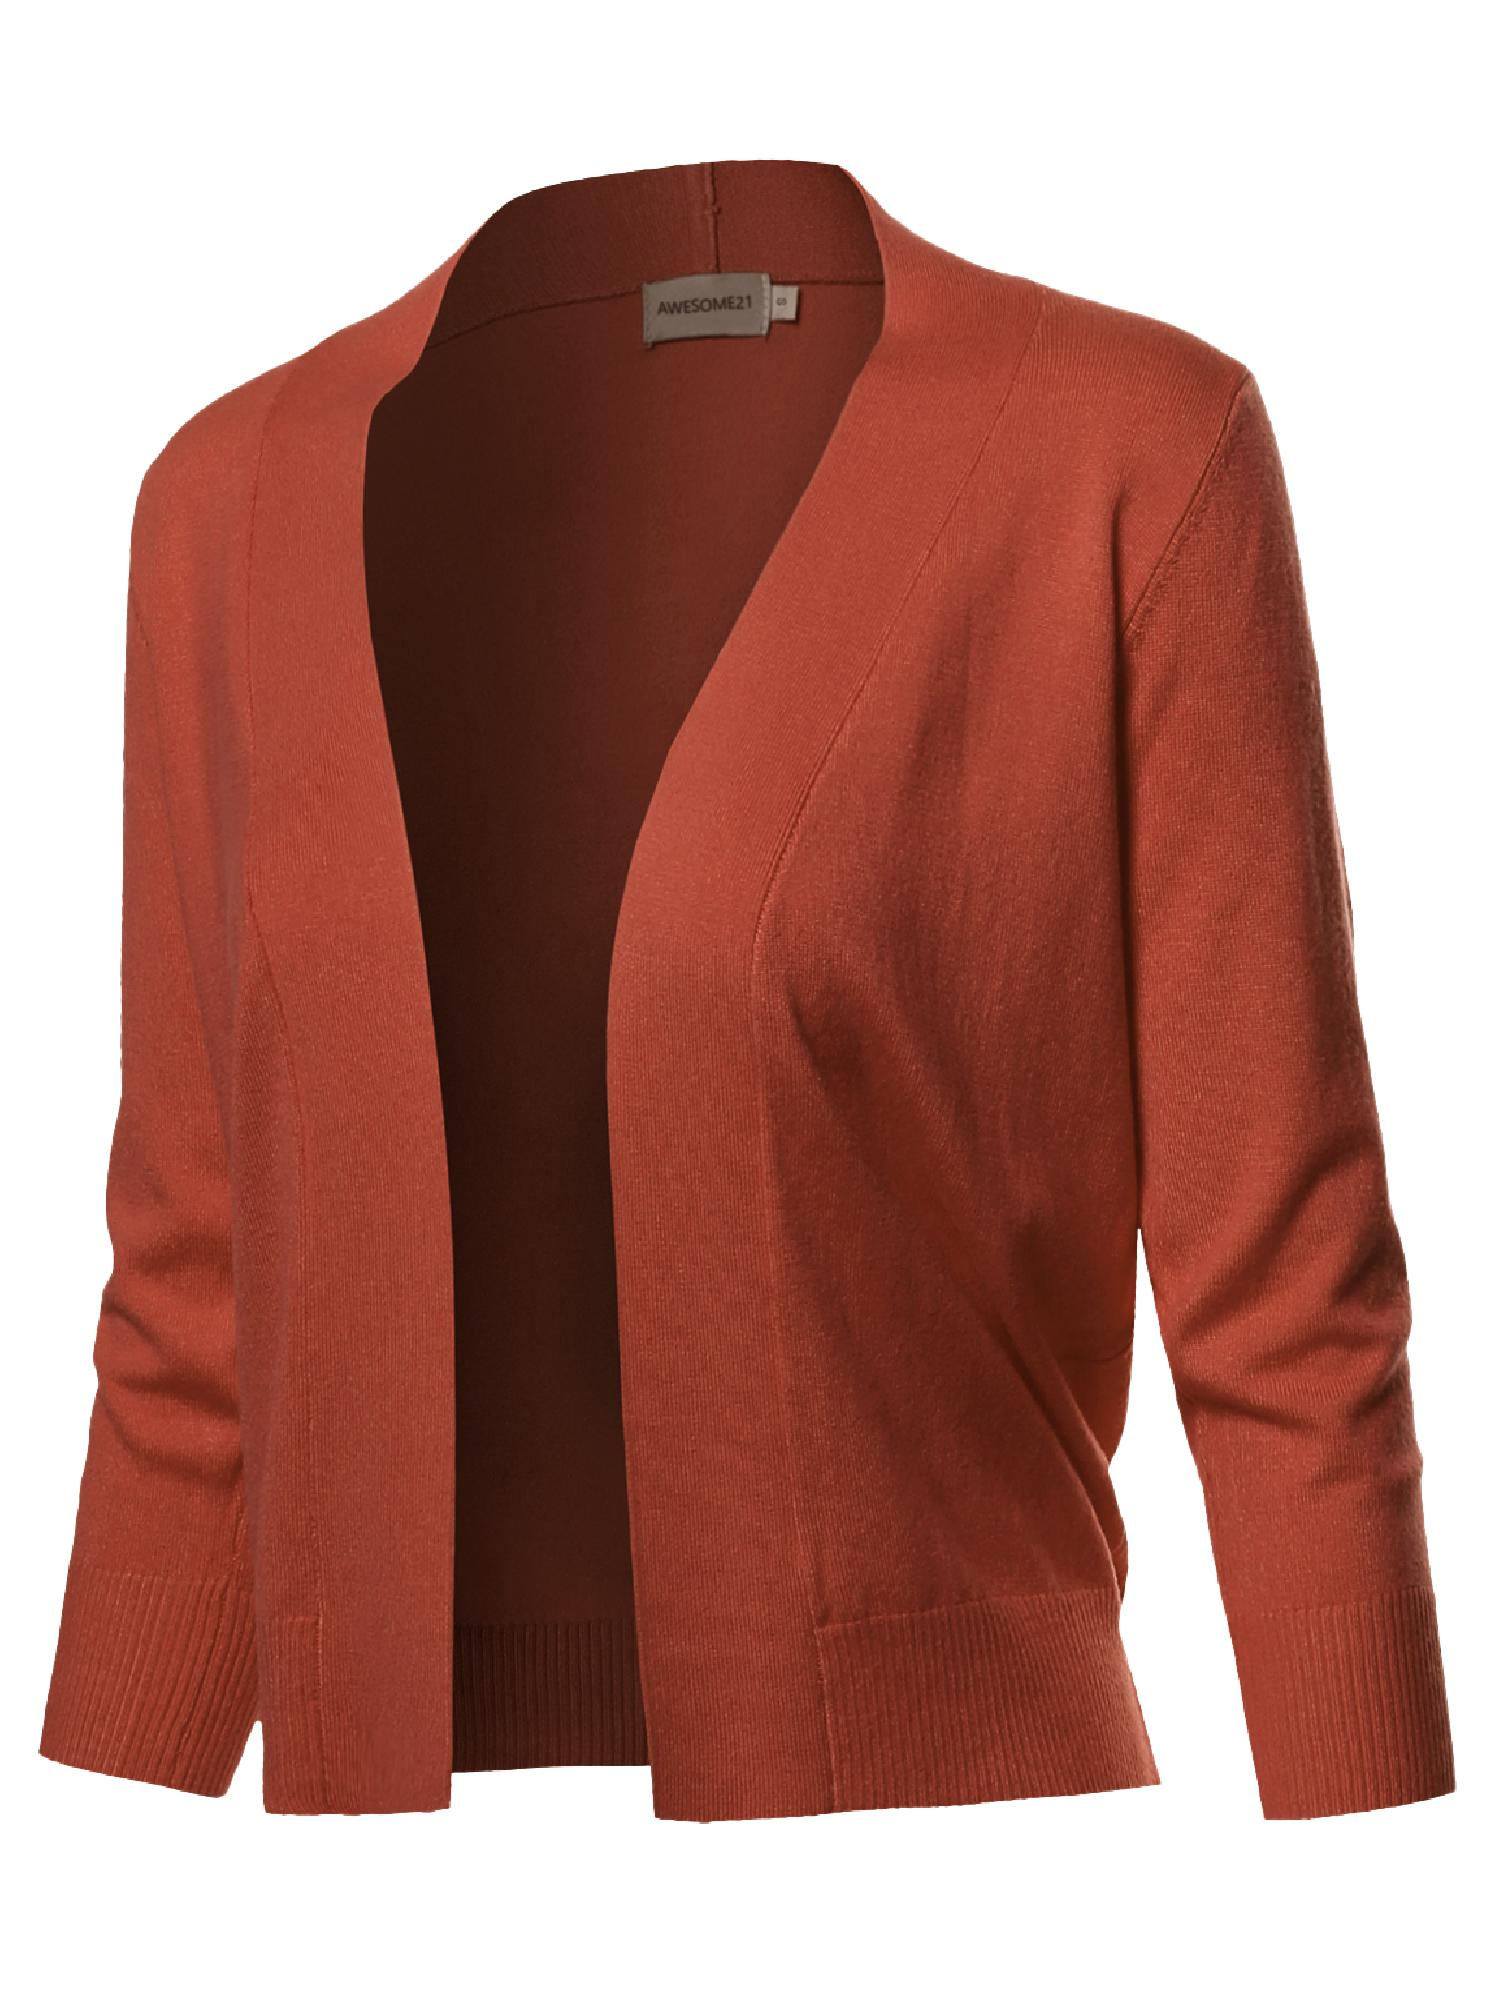 FashionOutfit Women's Solid Soft Stretch 3/4 Sleeve Layer Short Cardigan